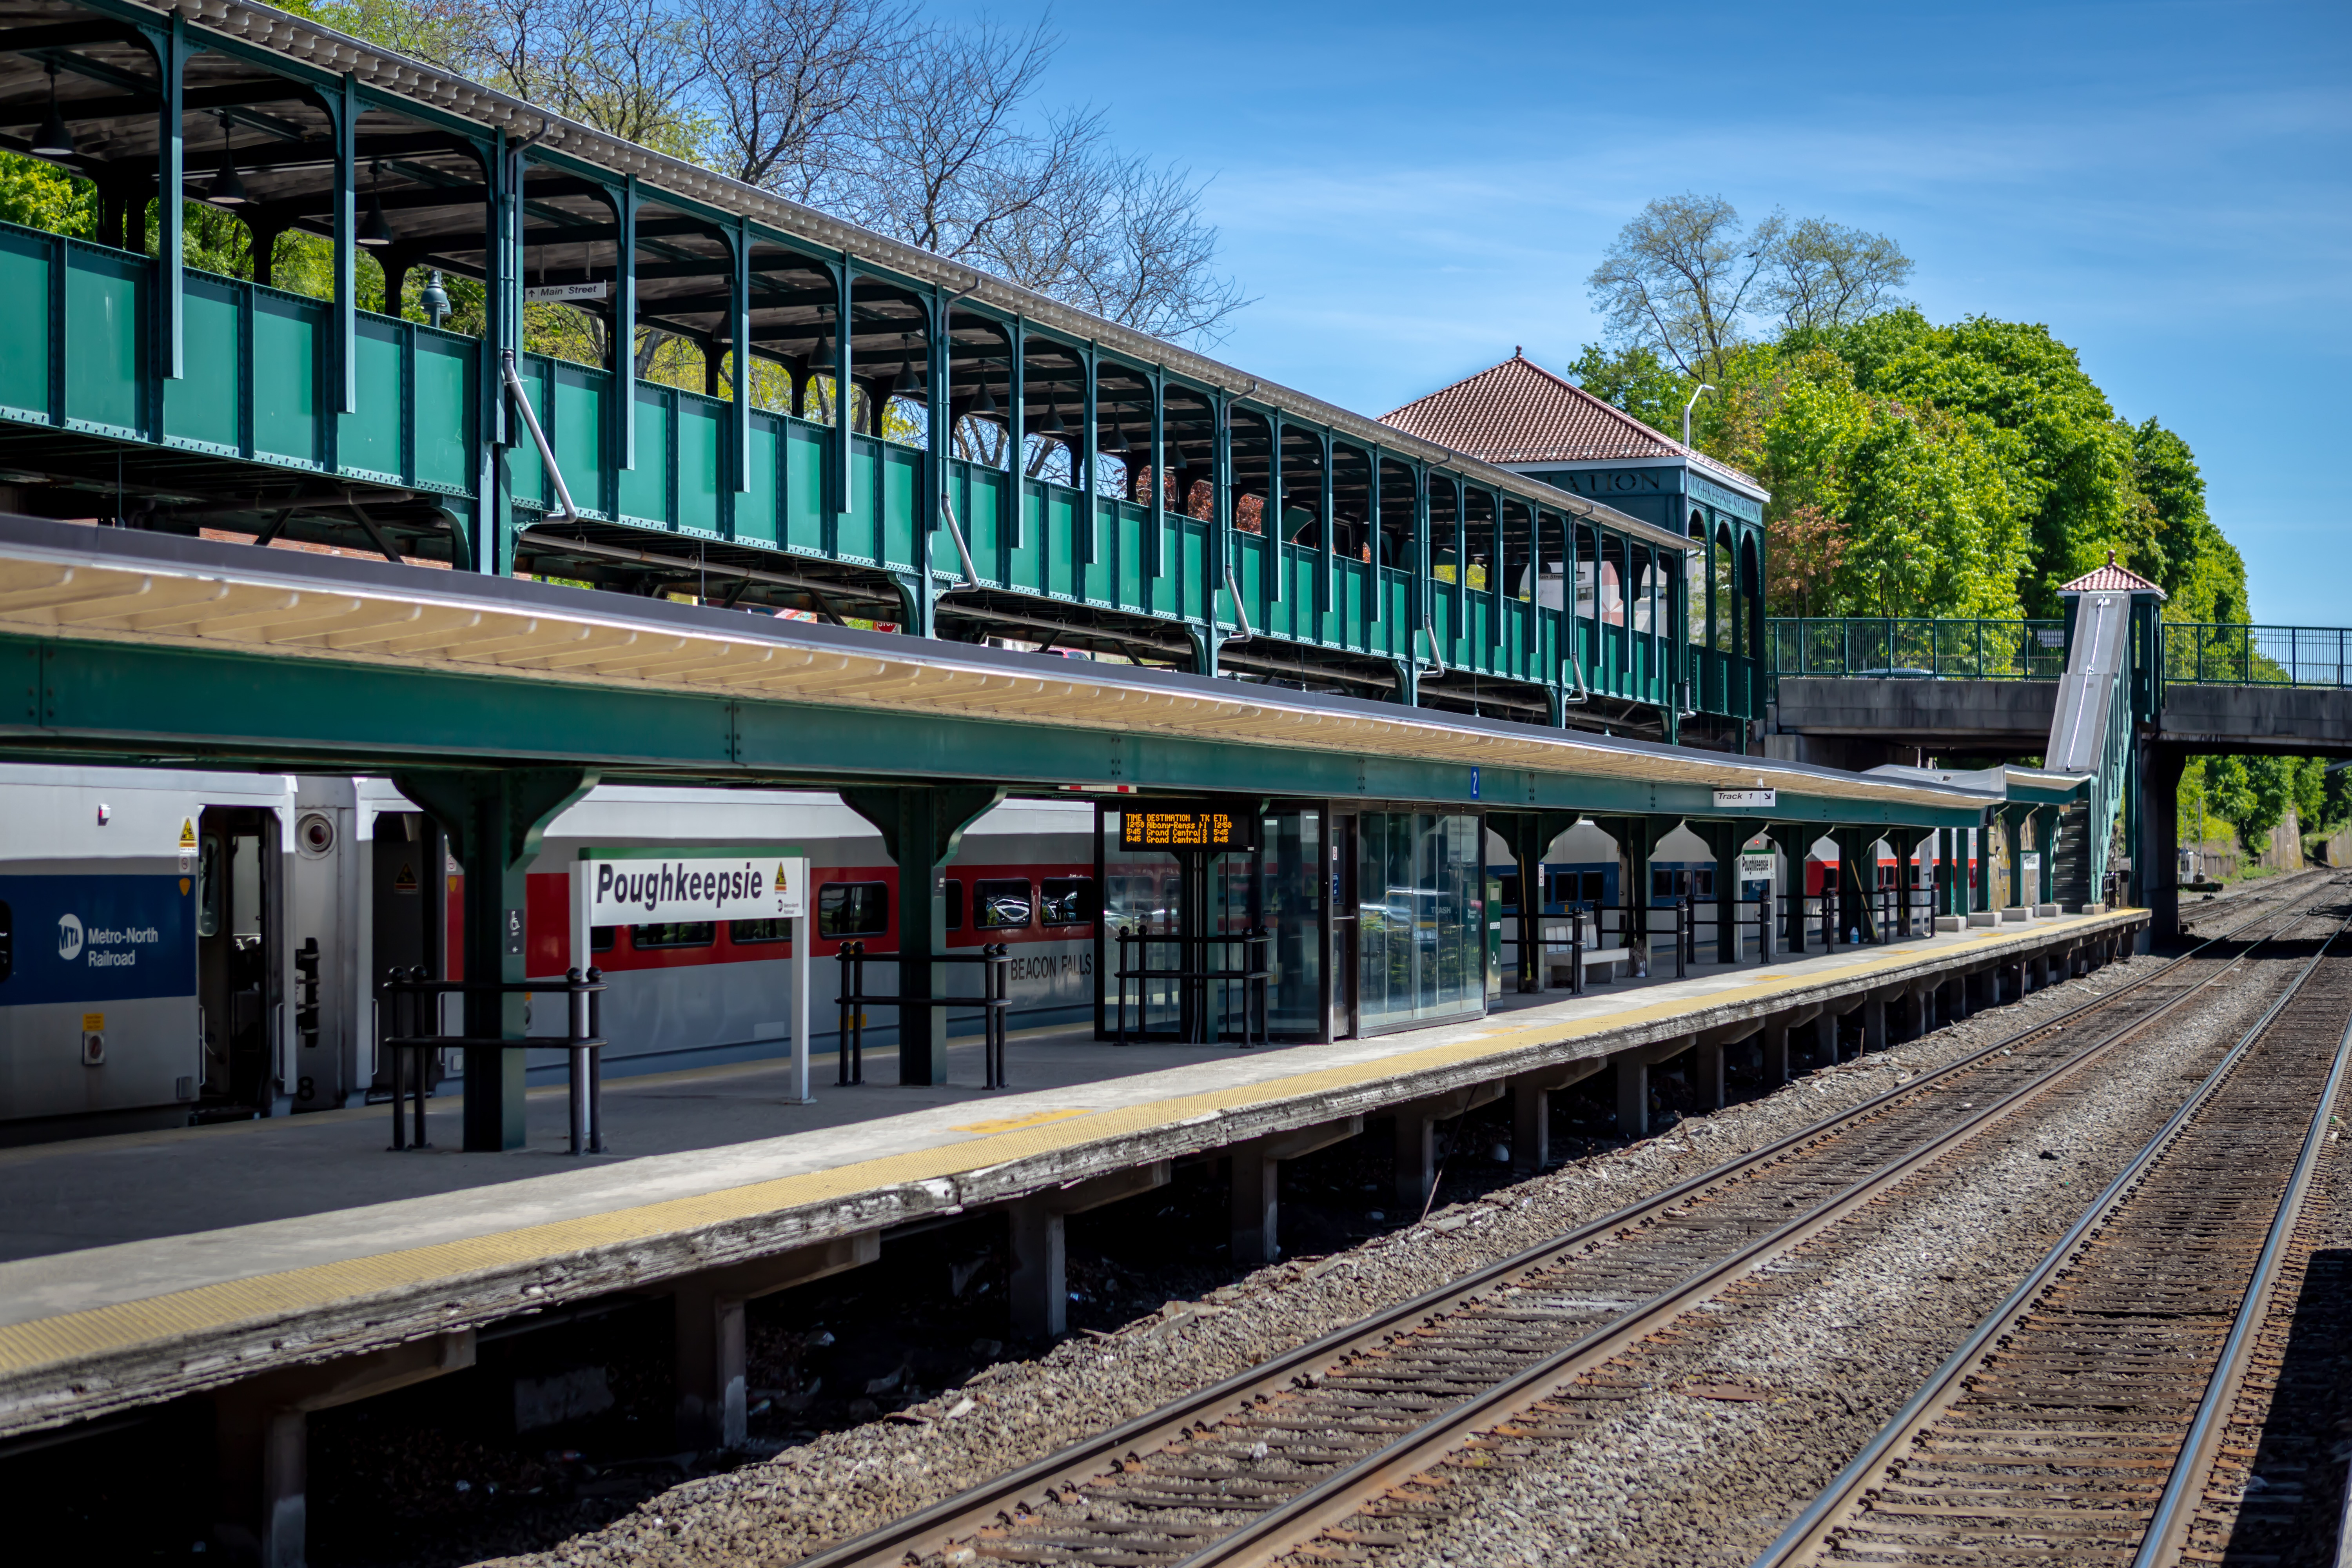 Poughkeepsie Train Station for Amtrak and Metro North, located 10 minutes from our new homes at Sleight Farm at LaGrange